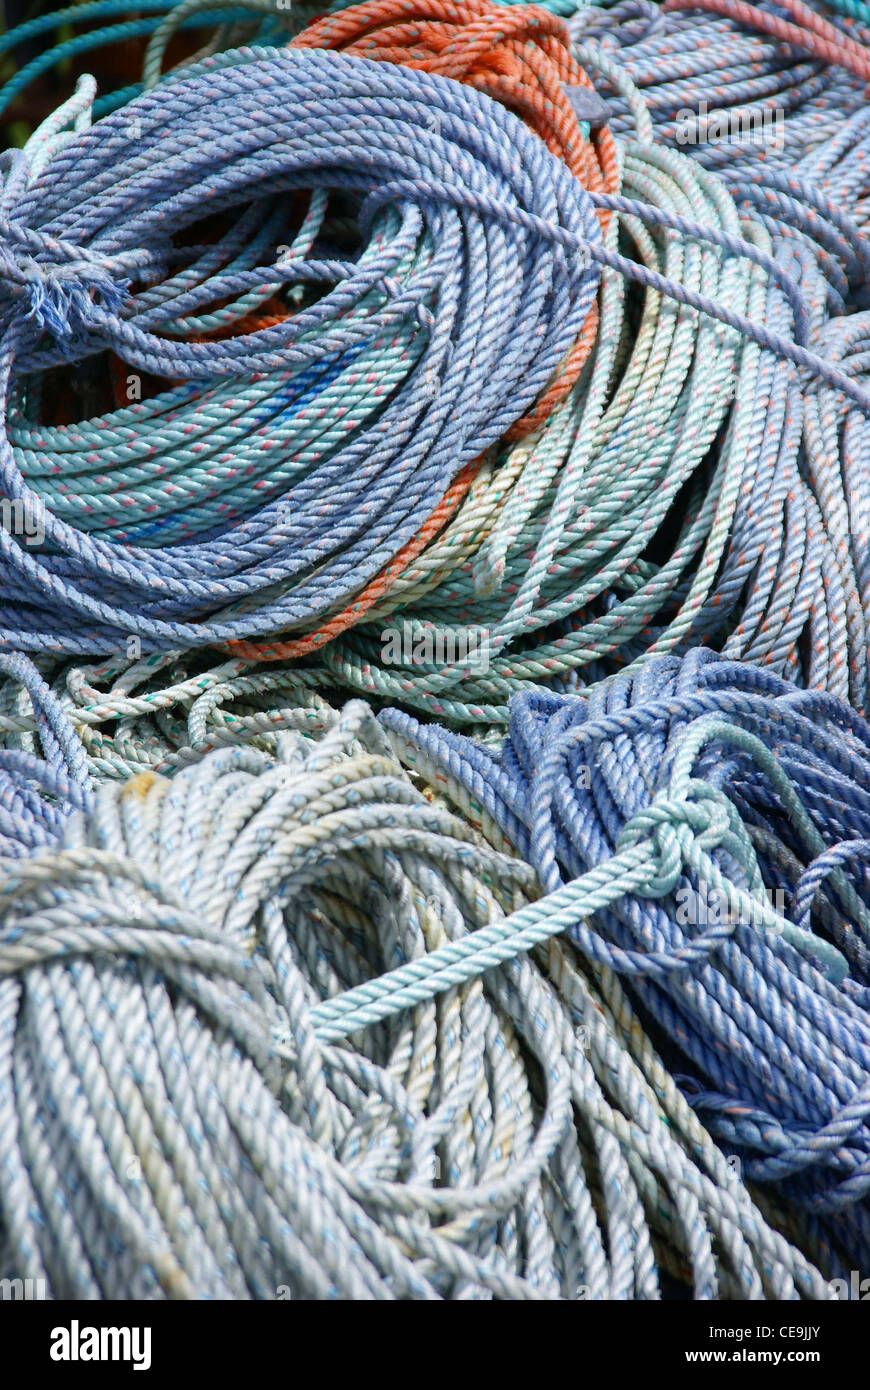 Coils Rope Rope Stock Photos & Coils Rope Rope Stock Images - Page 7 ...